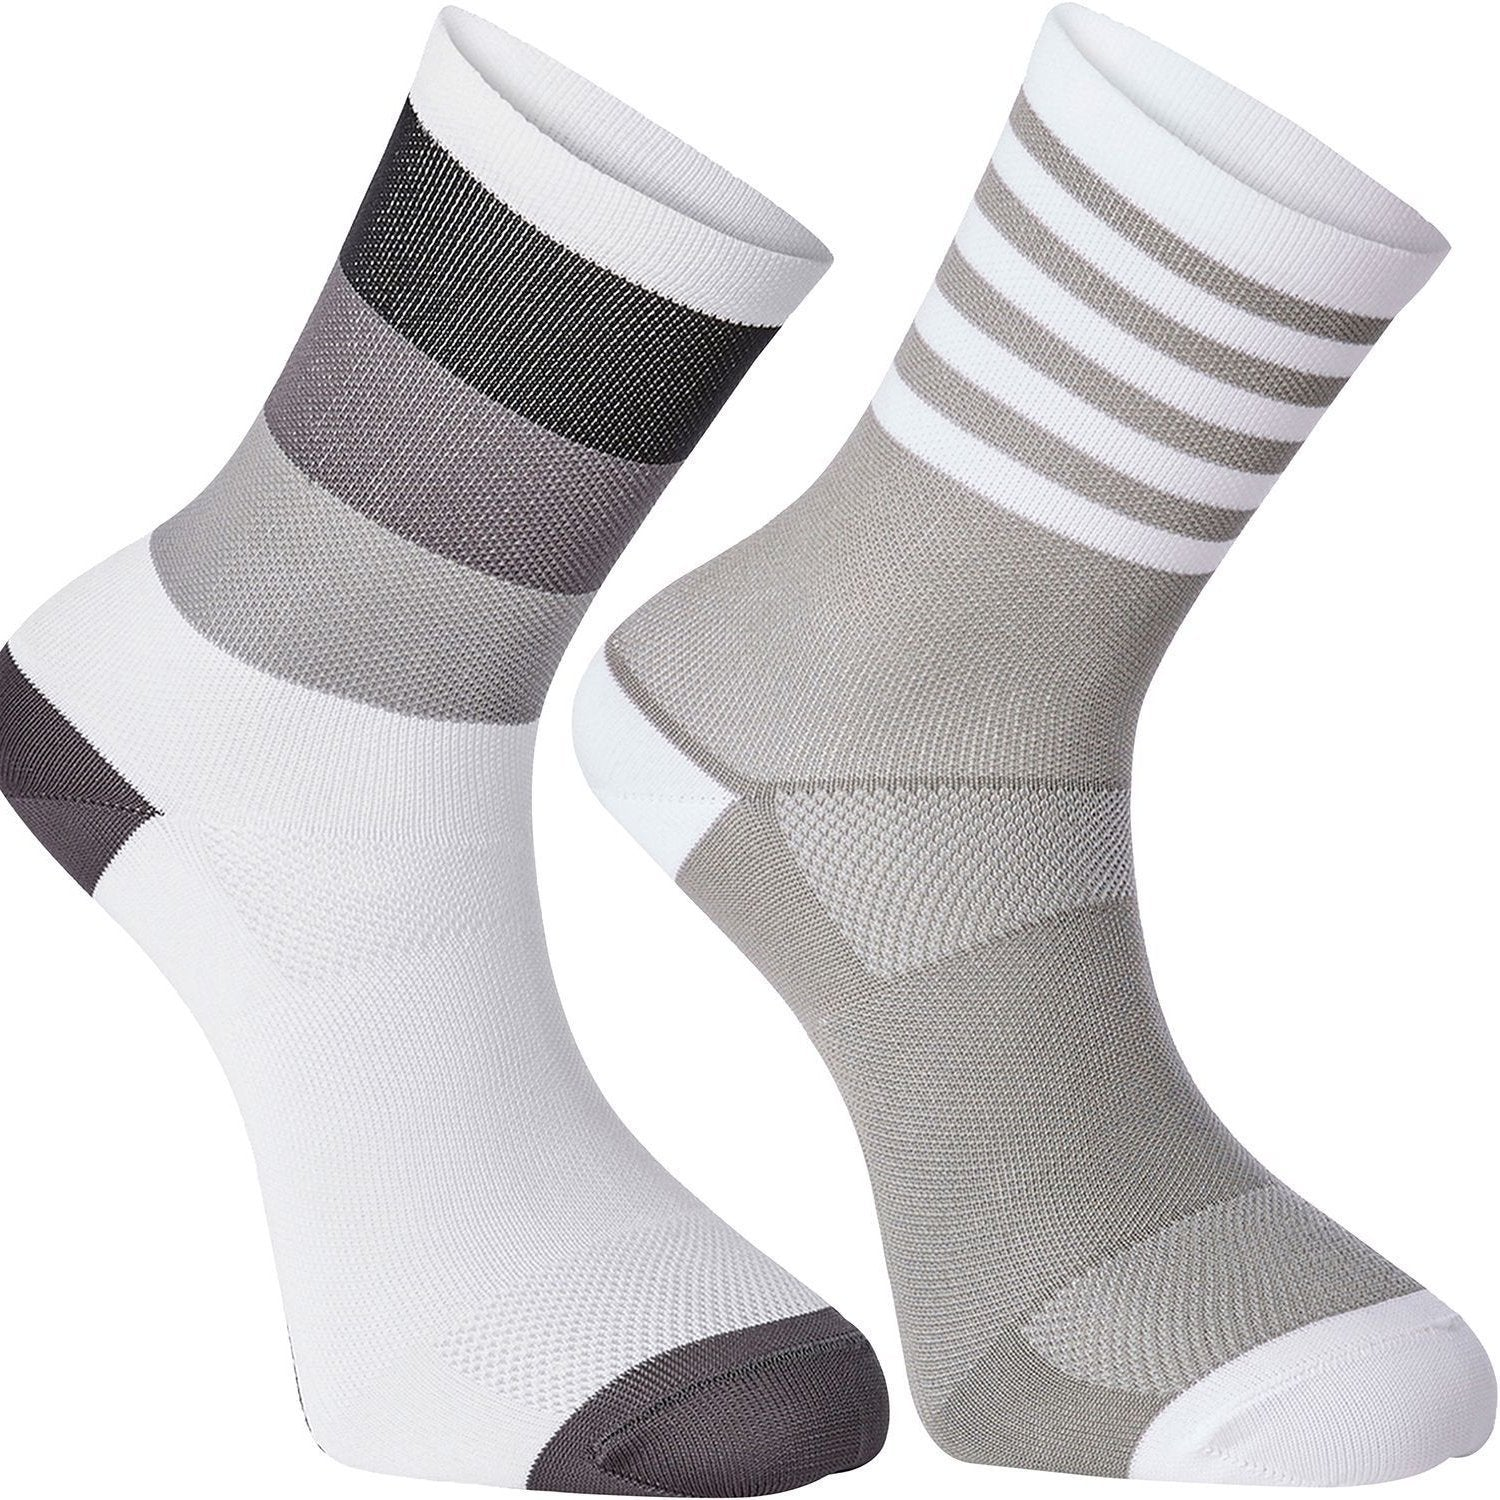 Madison Cycle Clothing > Socks white / cloud grey / S 36/39 Madison Sportive mid sock, block and stripe twin pack.